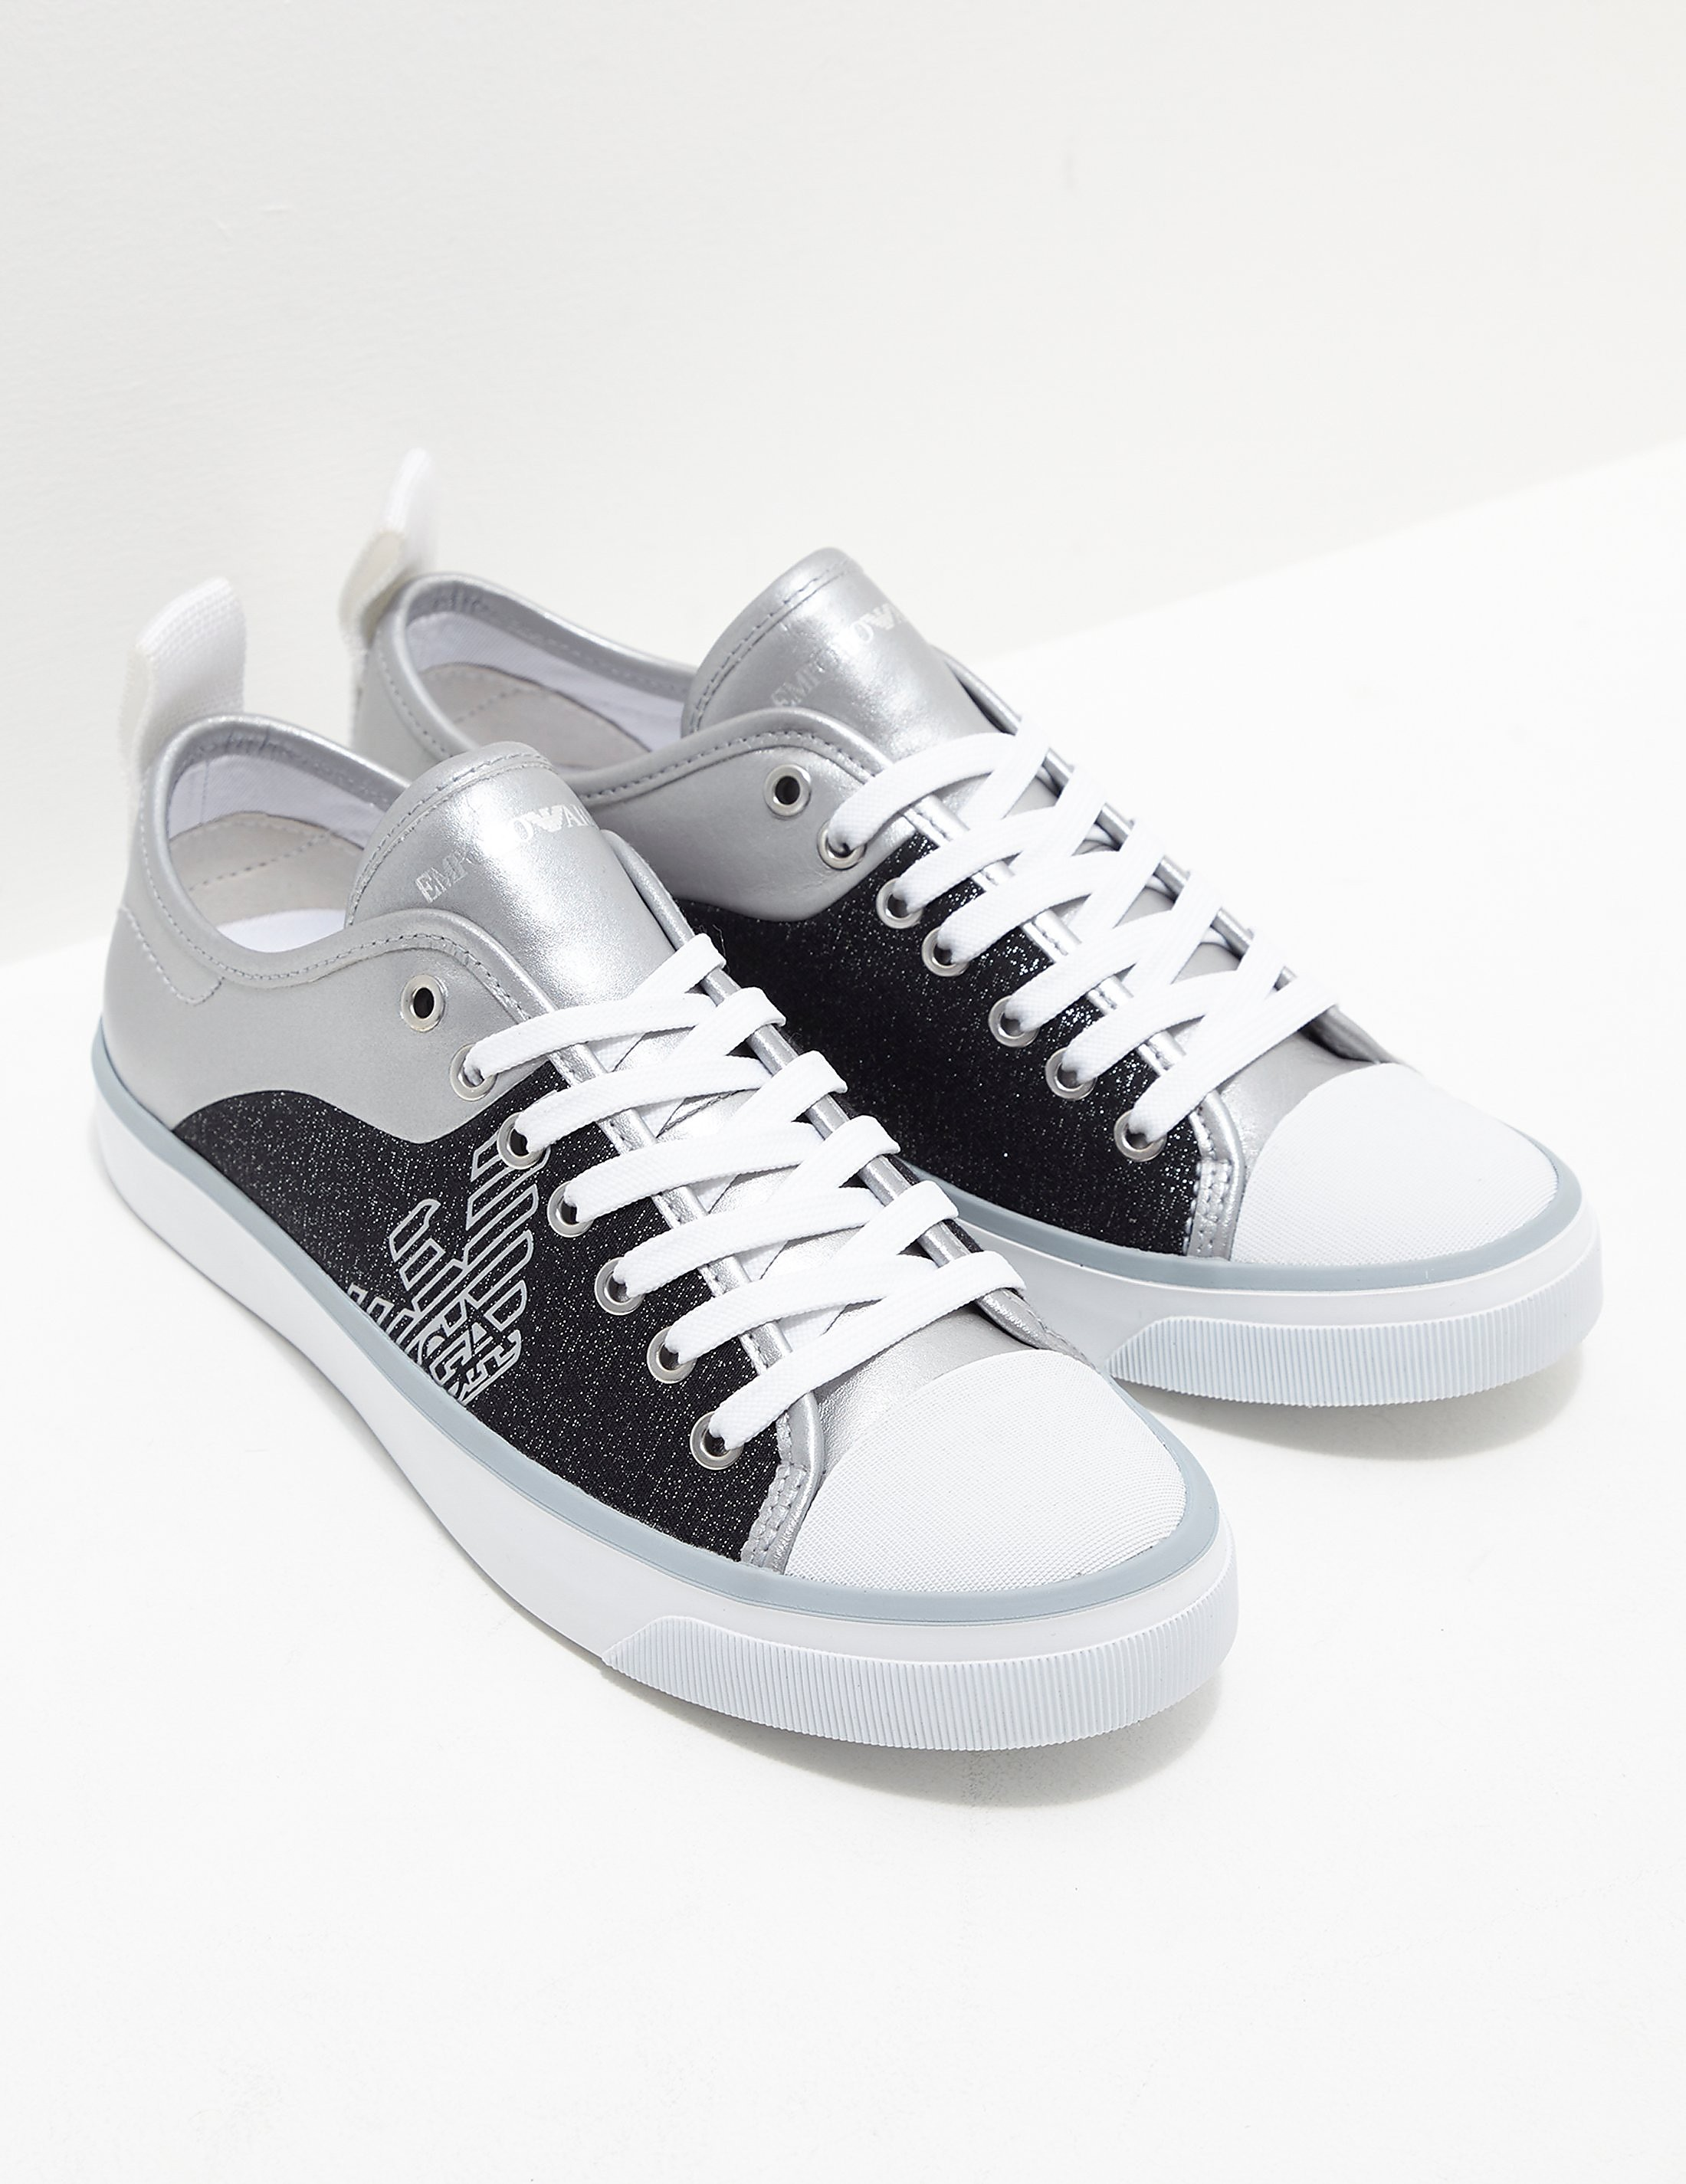 Emporio Armani Venus Low Sneakers